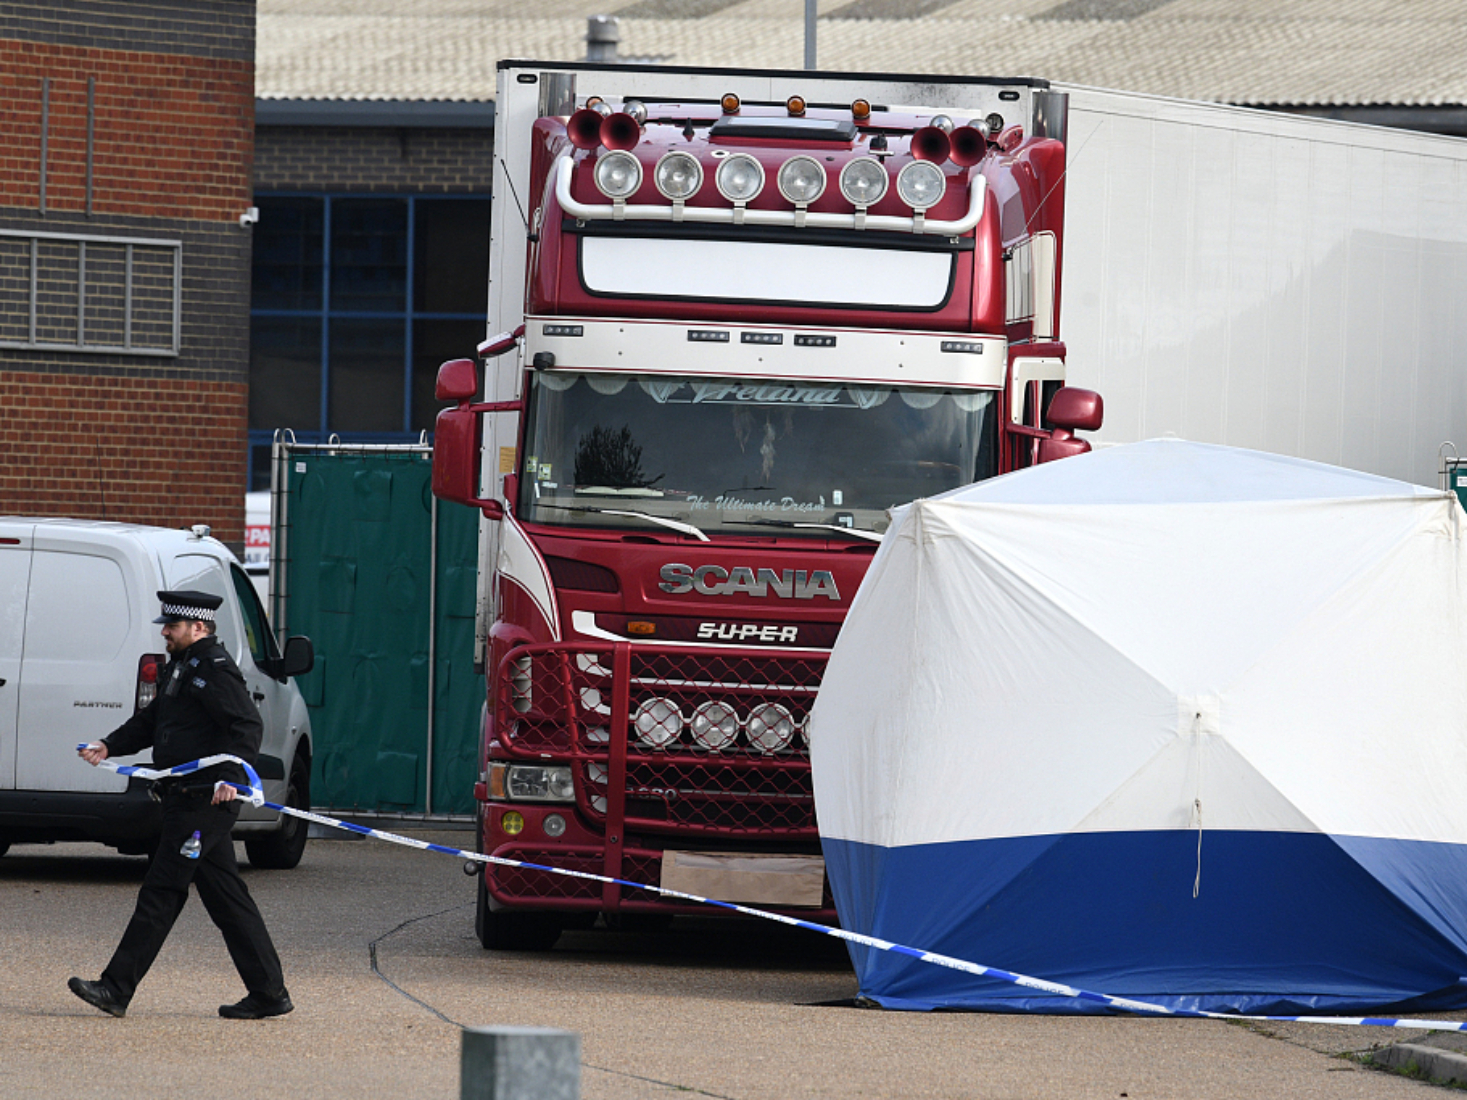 British police launch manhunt for two men over Essex lorry deaths